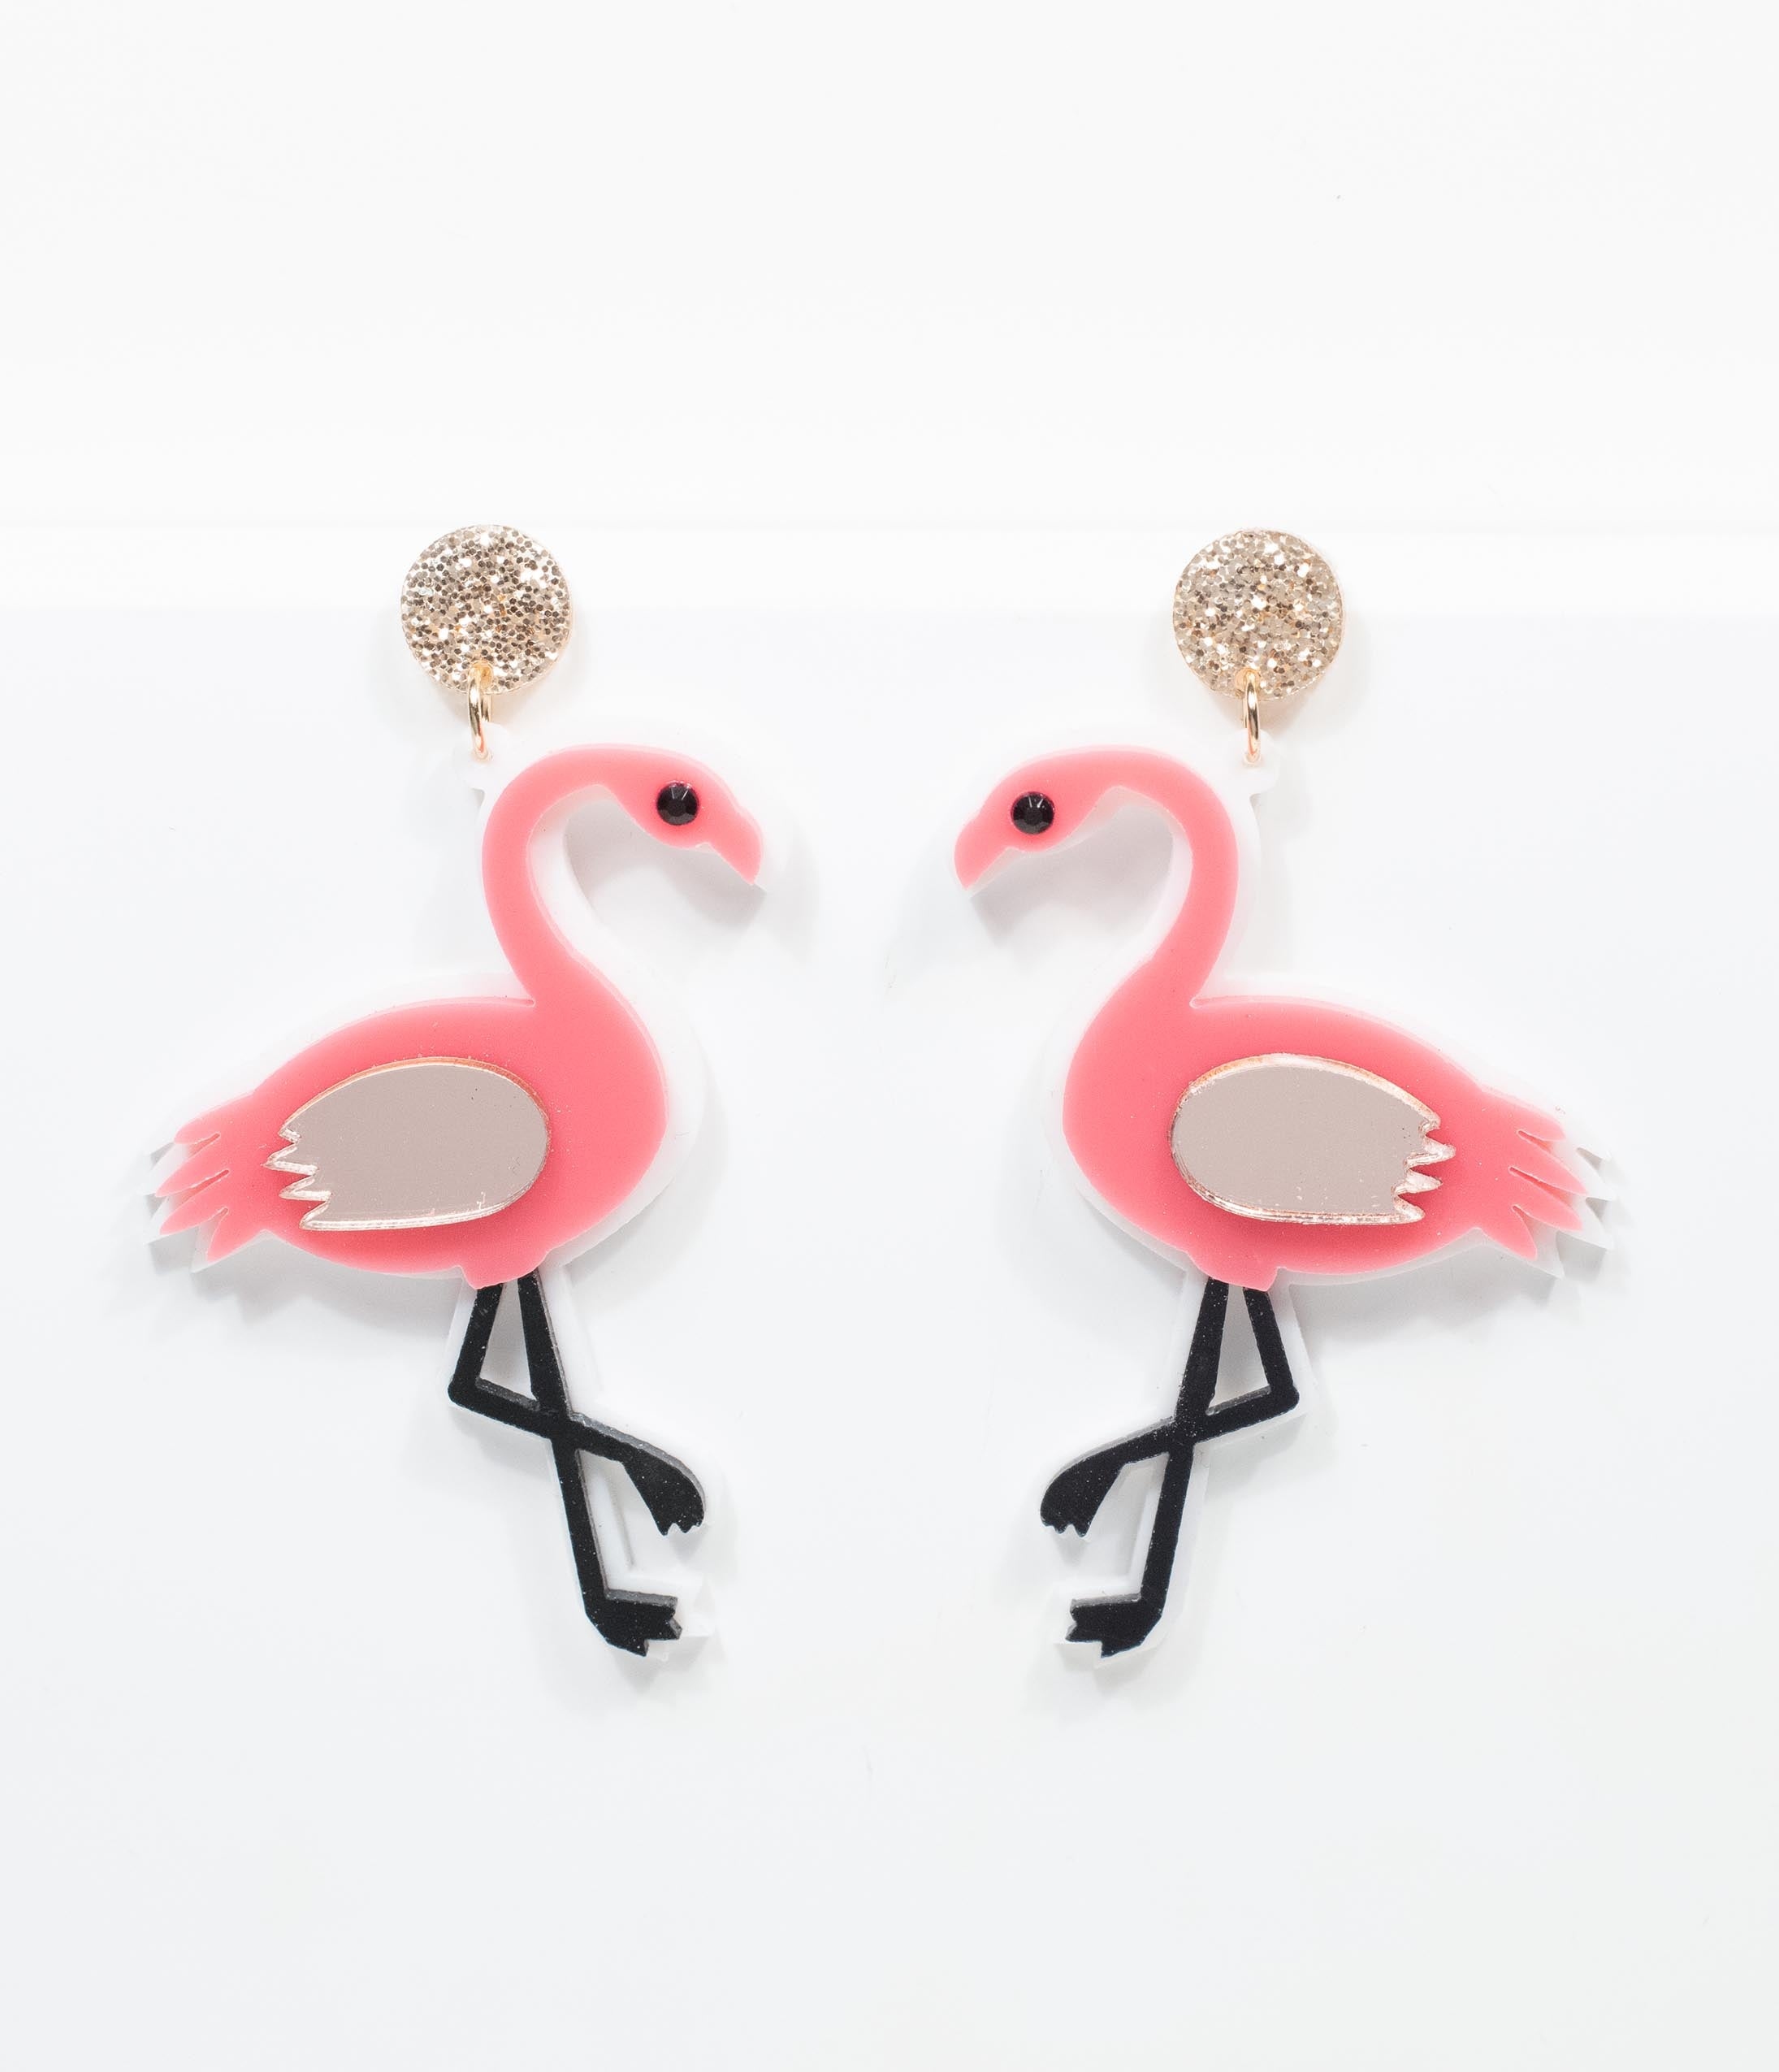 1950s Jewelry Styles and History Pink Flamingos Drop Earrings $24.00 AT vintagedancer.com